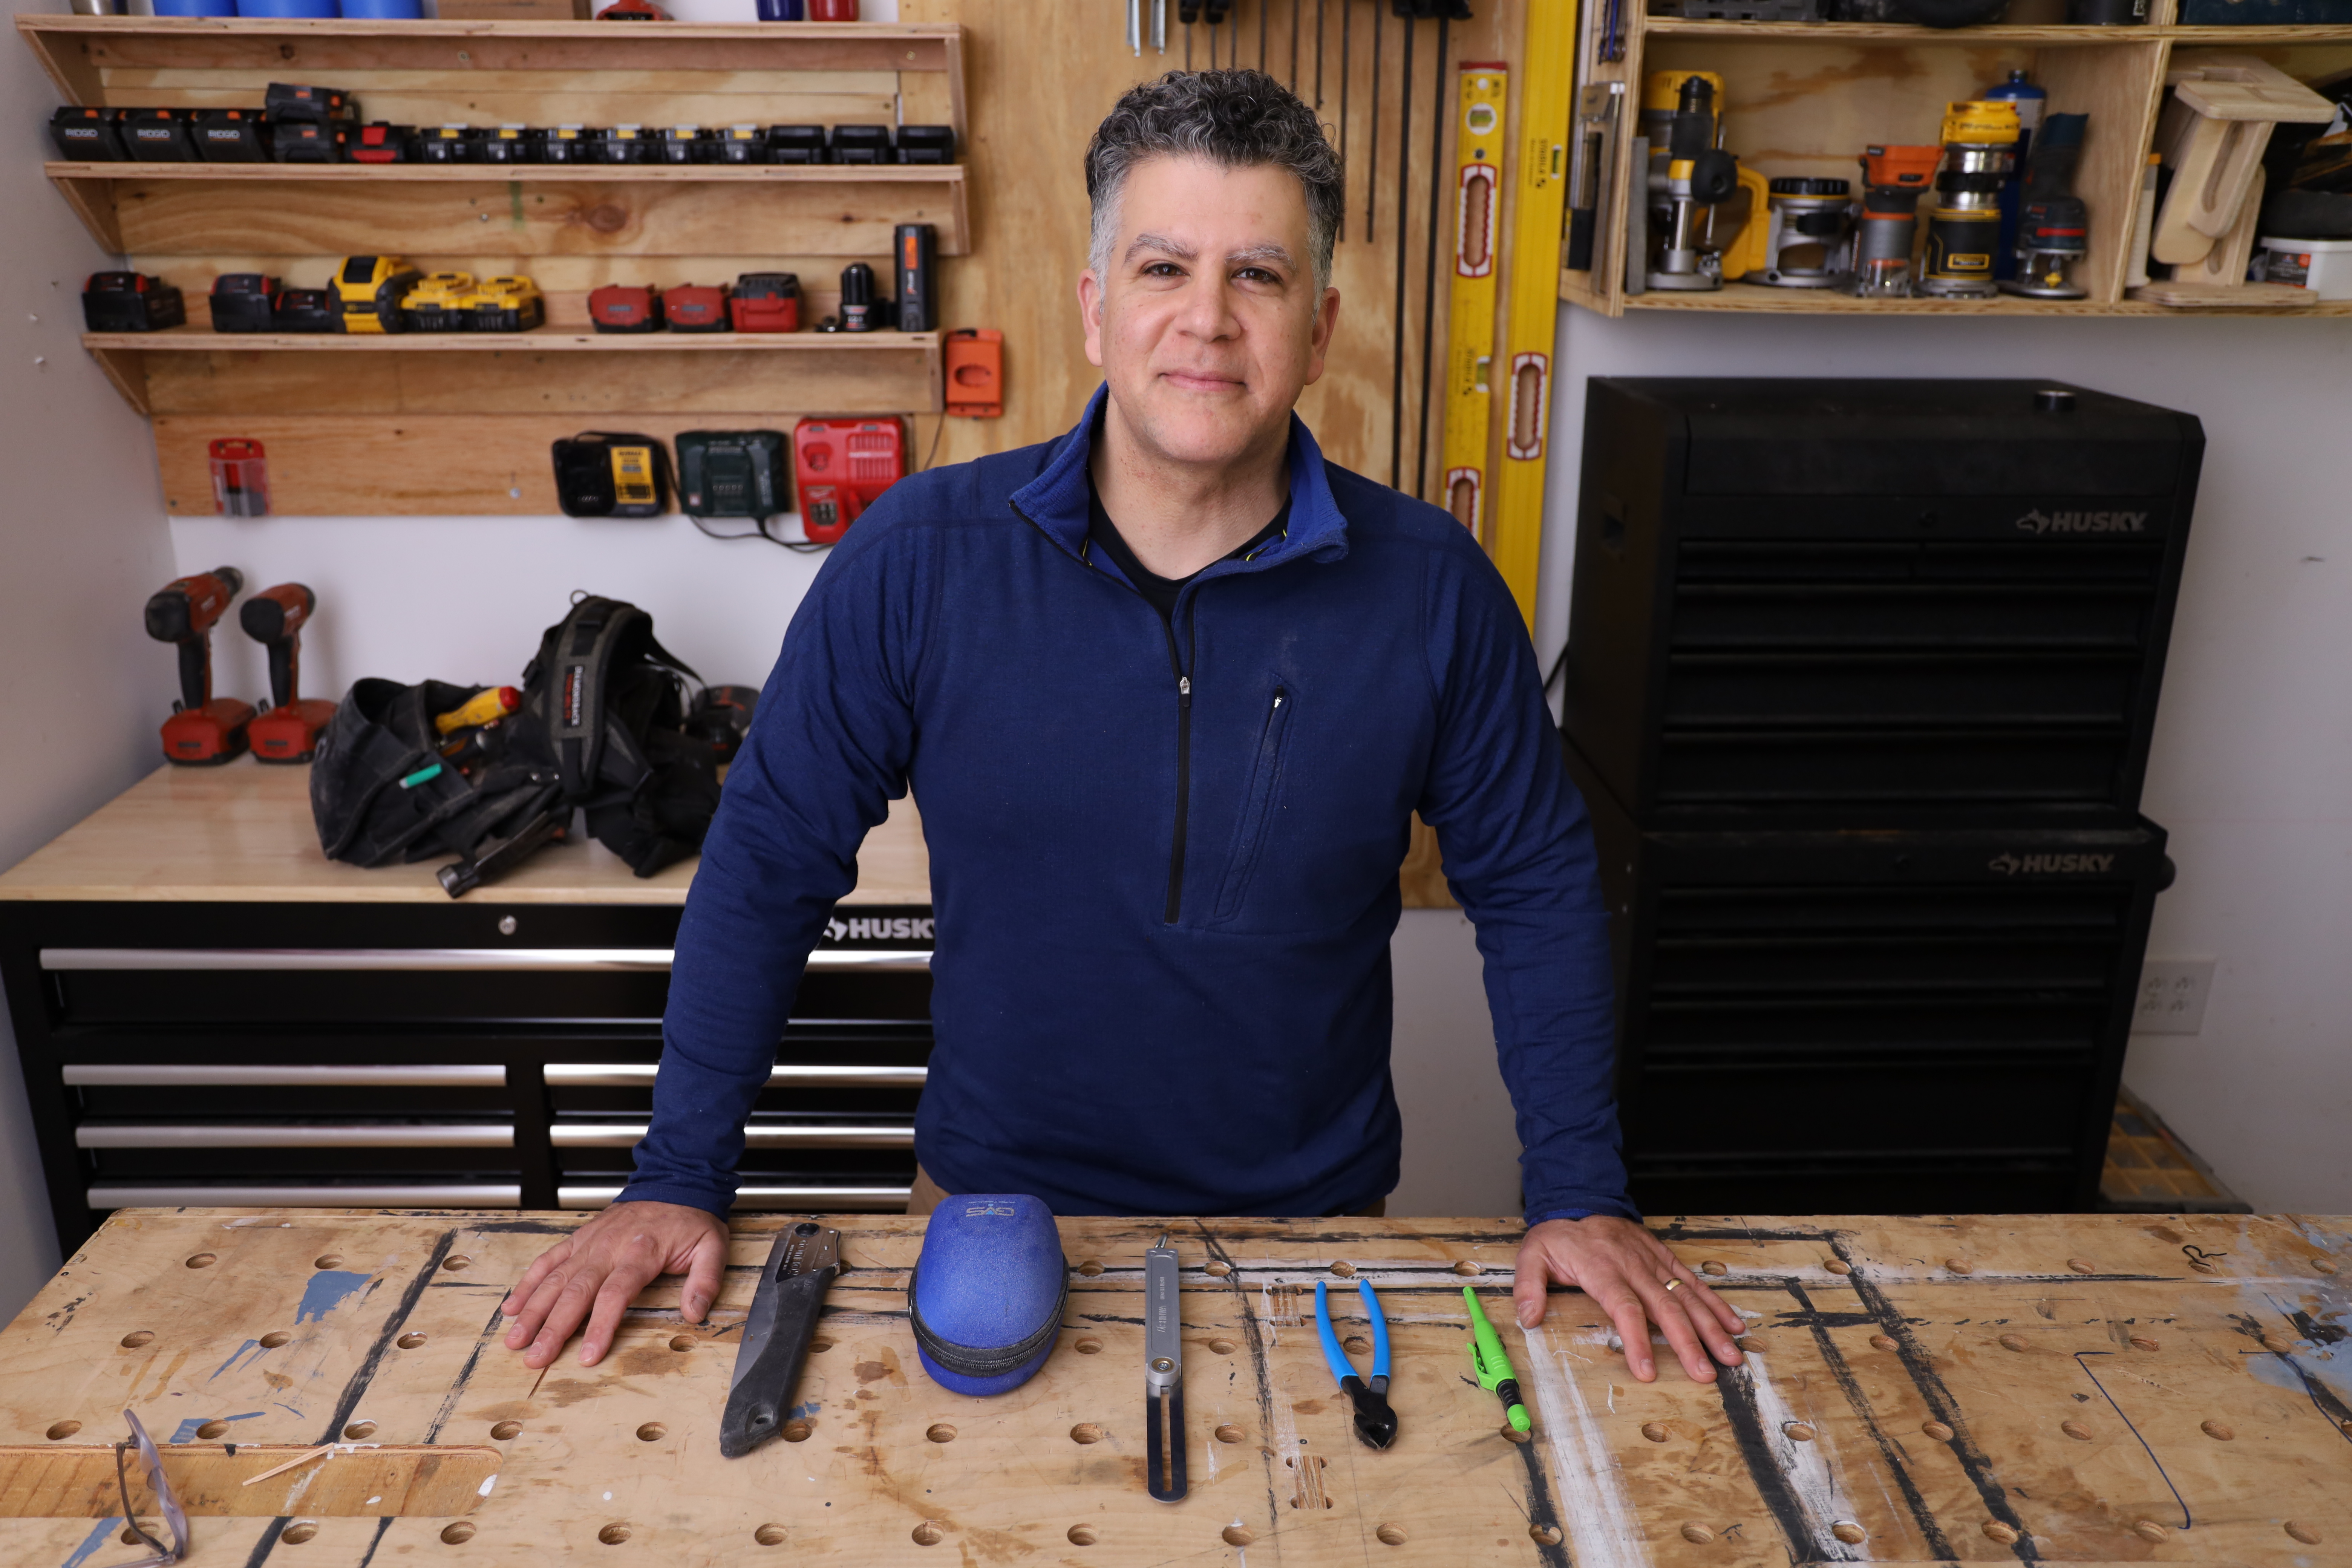 TOH editor Chris Ermides recommends 5 hand tools for your workshop.